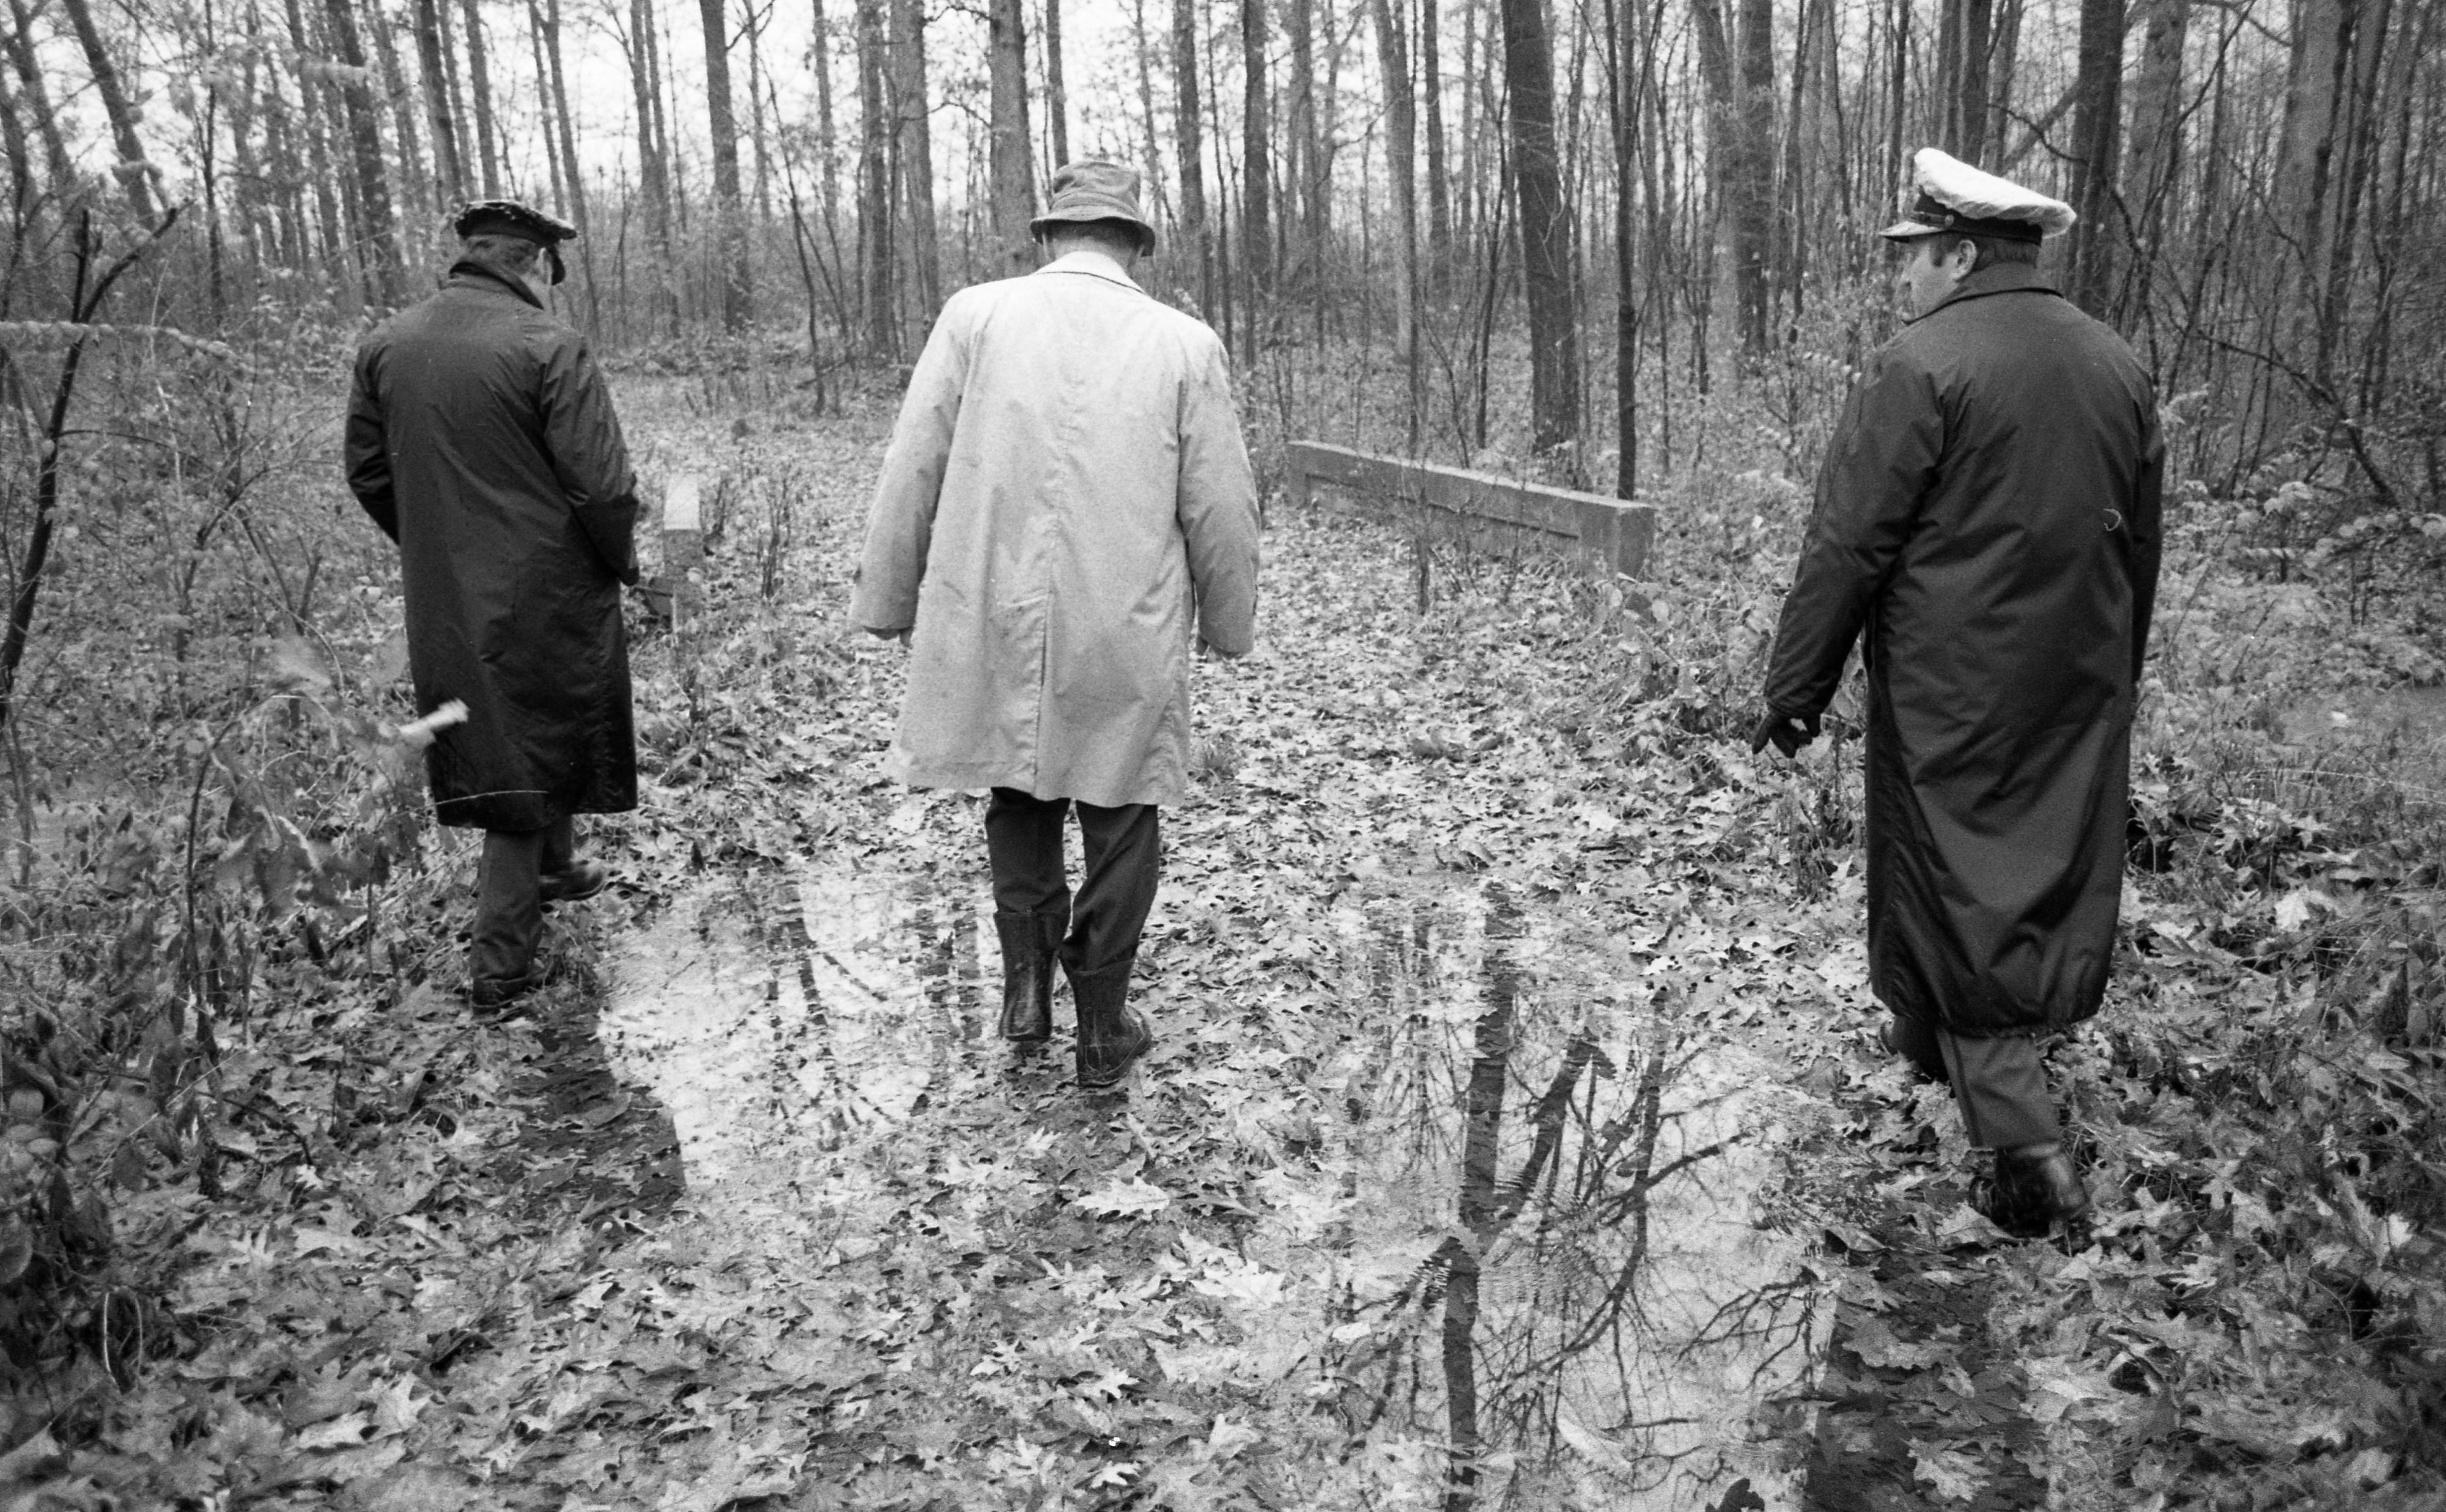 Ann Arbor Police Force Searches For Purse in Nancy Faber Murder Investigation, November 1983 image